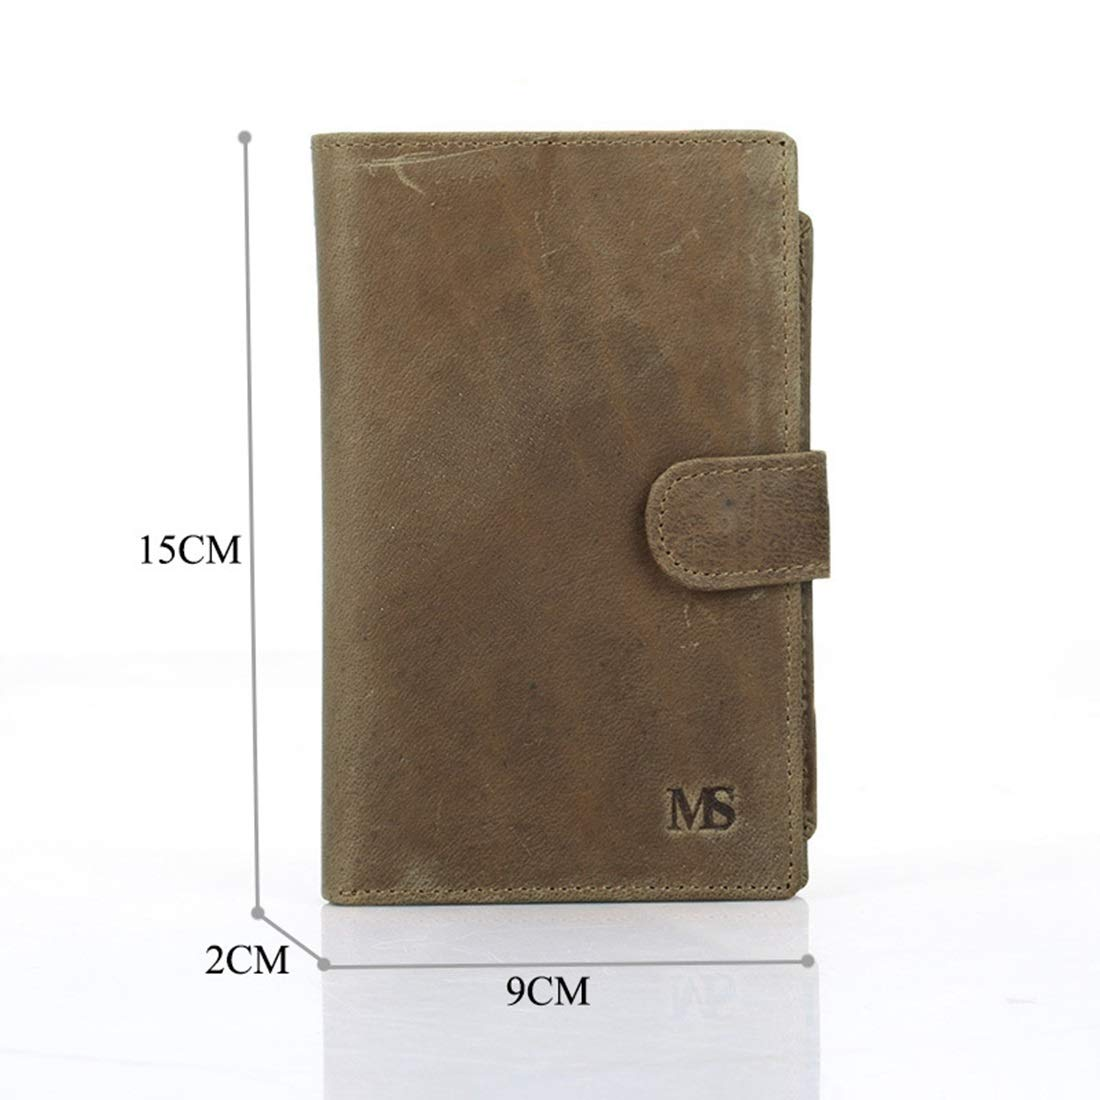 Color : Dark Brown KRPENRIO Mens Wallet Leather Short Wallet Safety Buckle Change Coin Wallet 2 Fold Wallet Brown